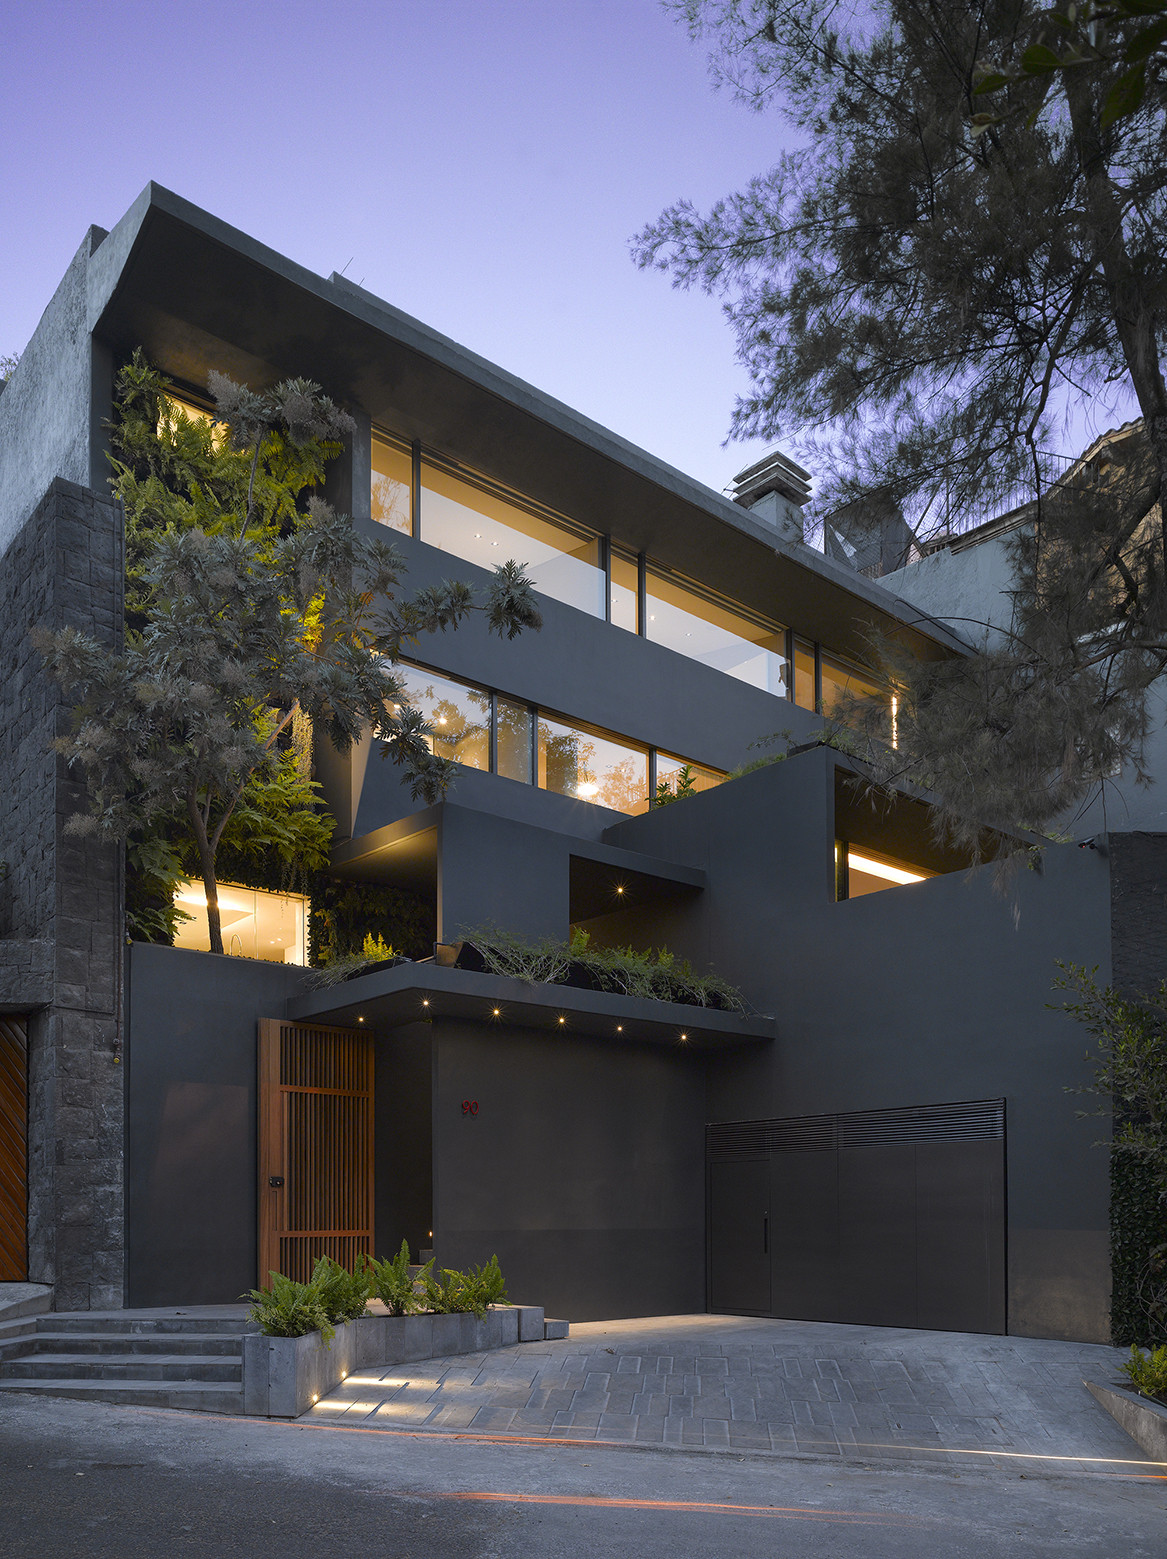 Mexico City Architecture House